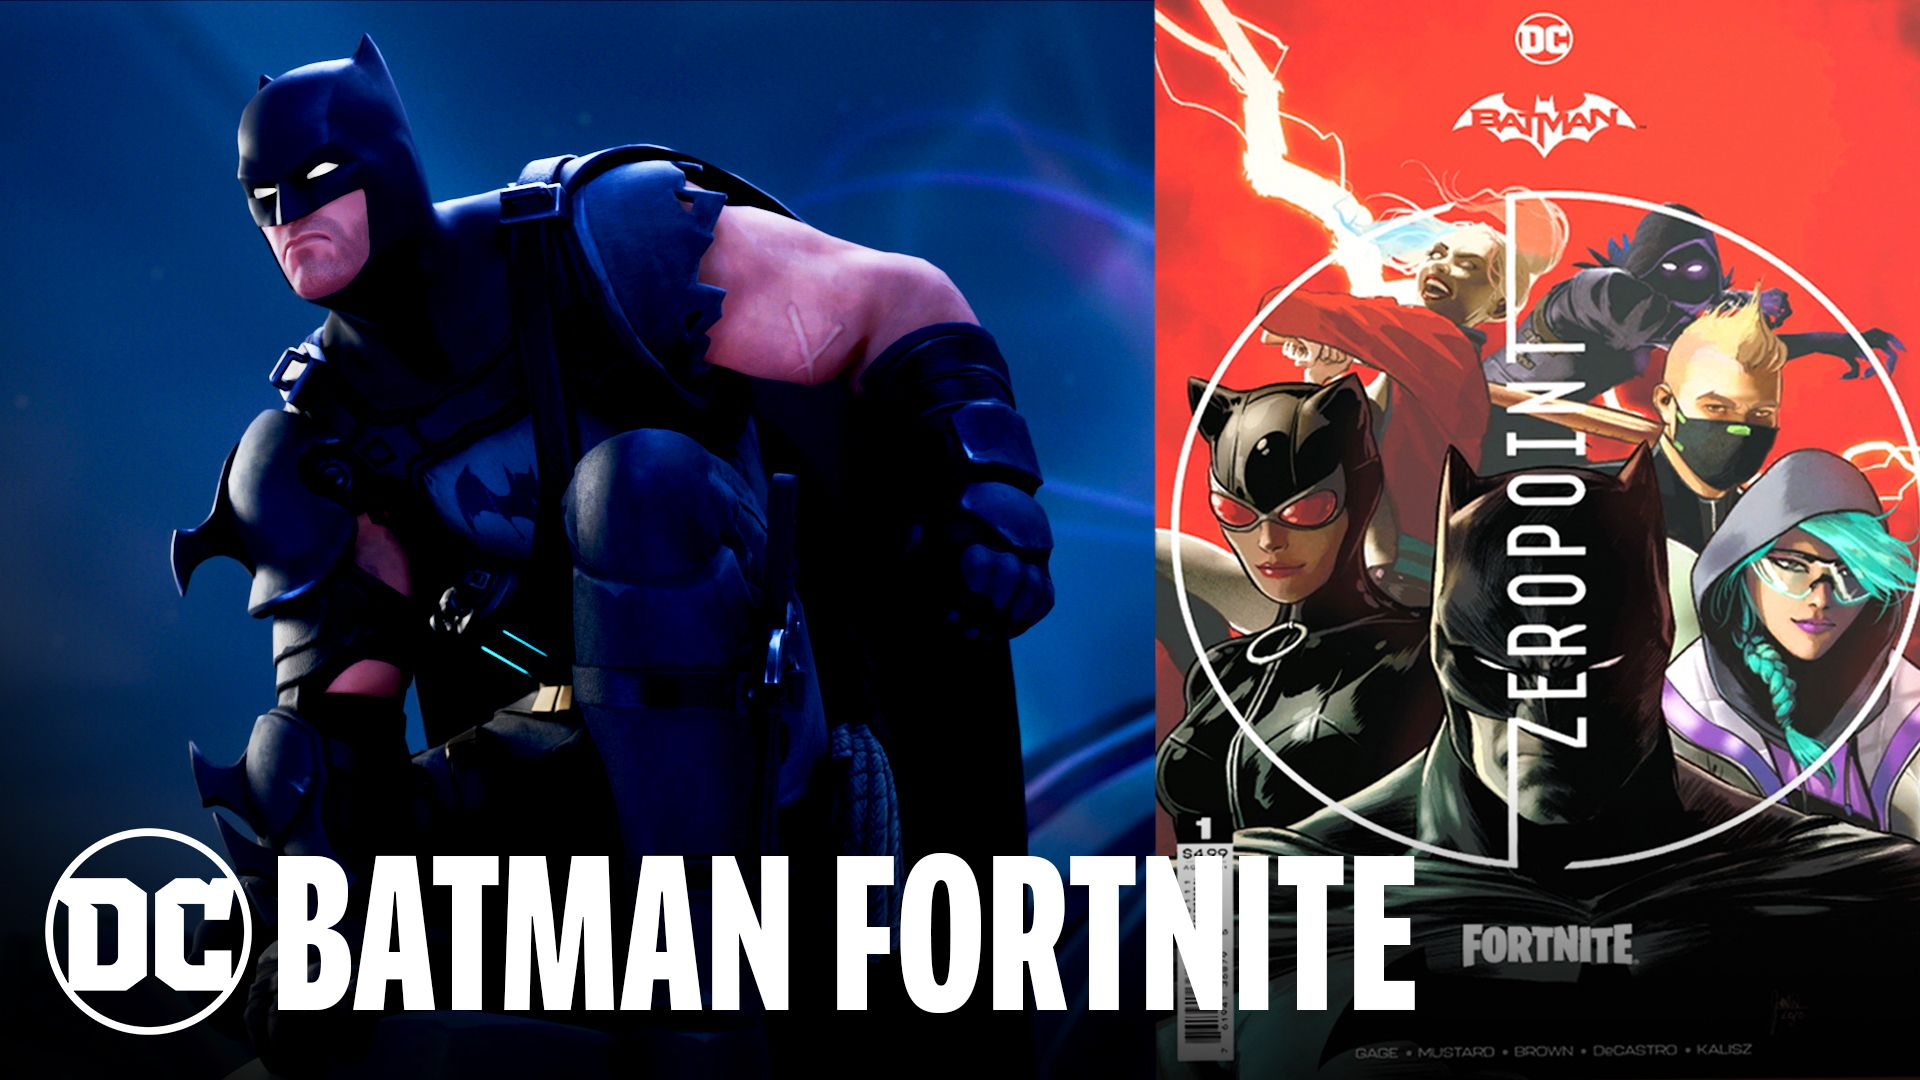 /batman-fortnite-comic-crossover-is-underway-gxx3467 feature image